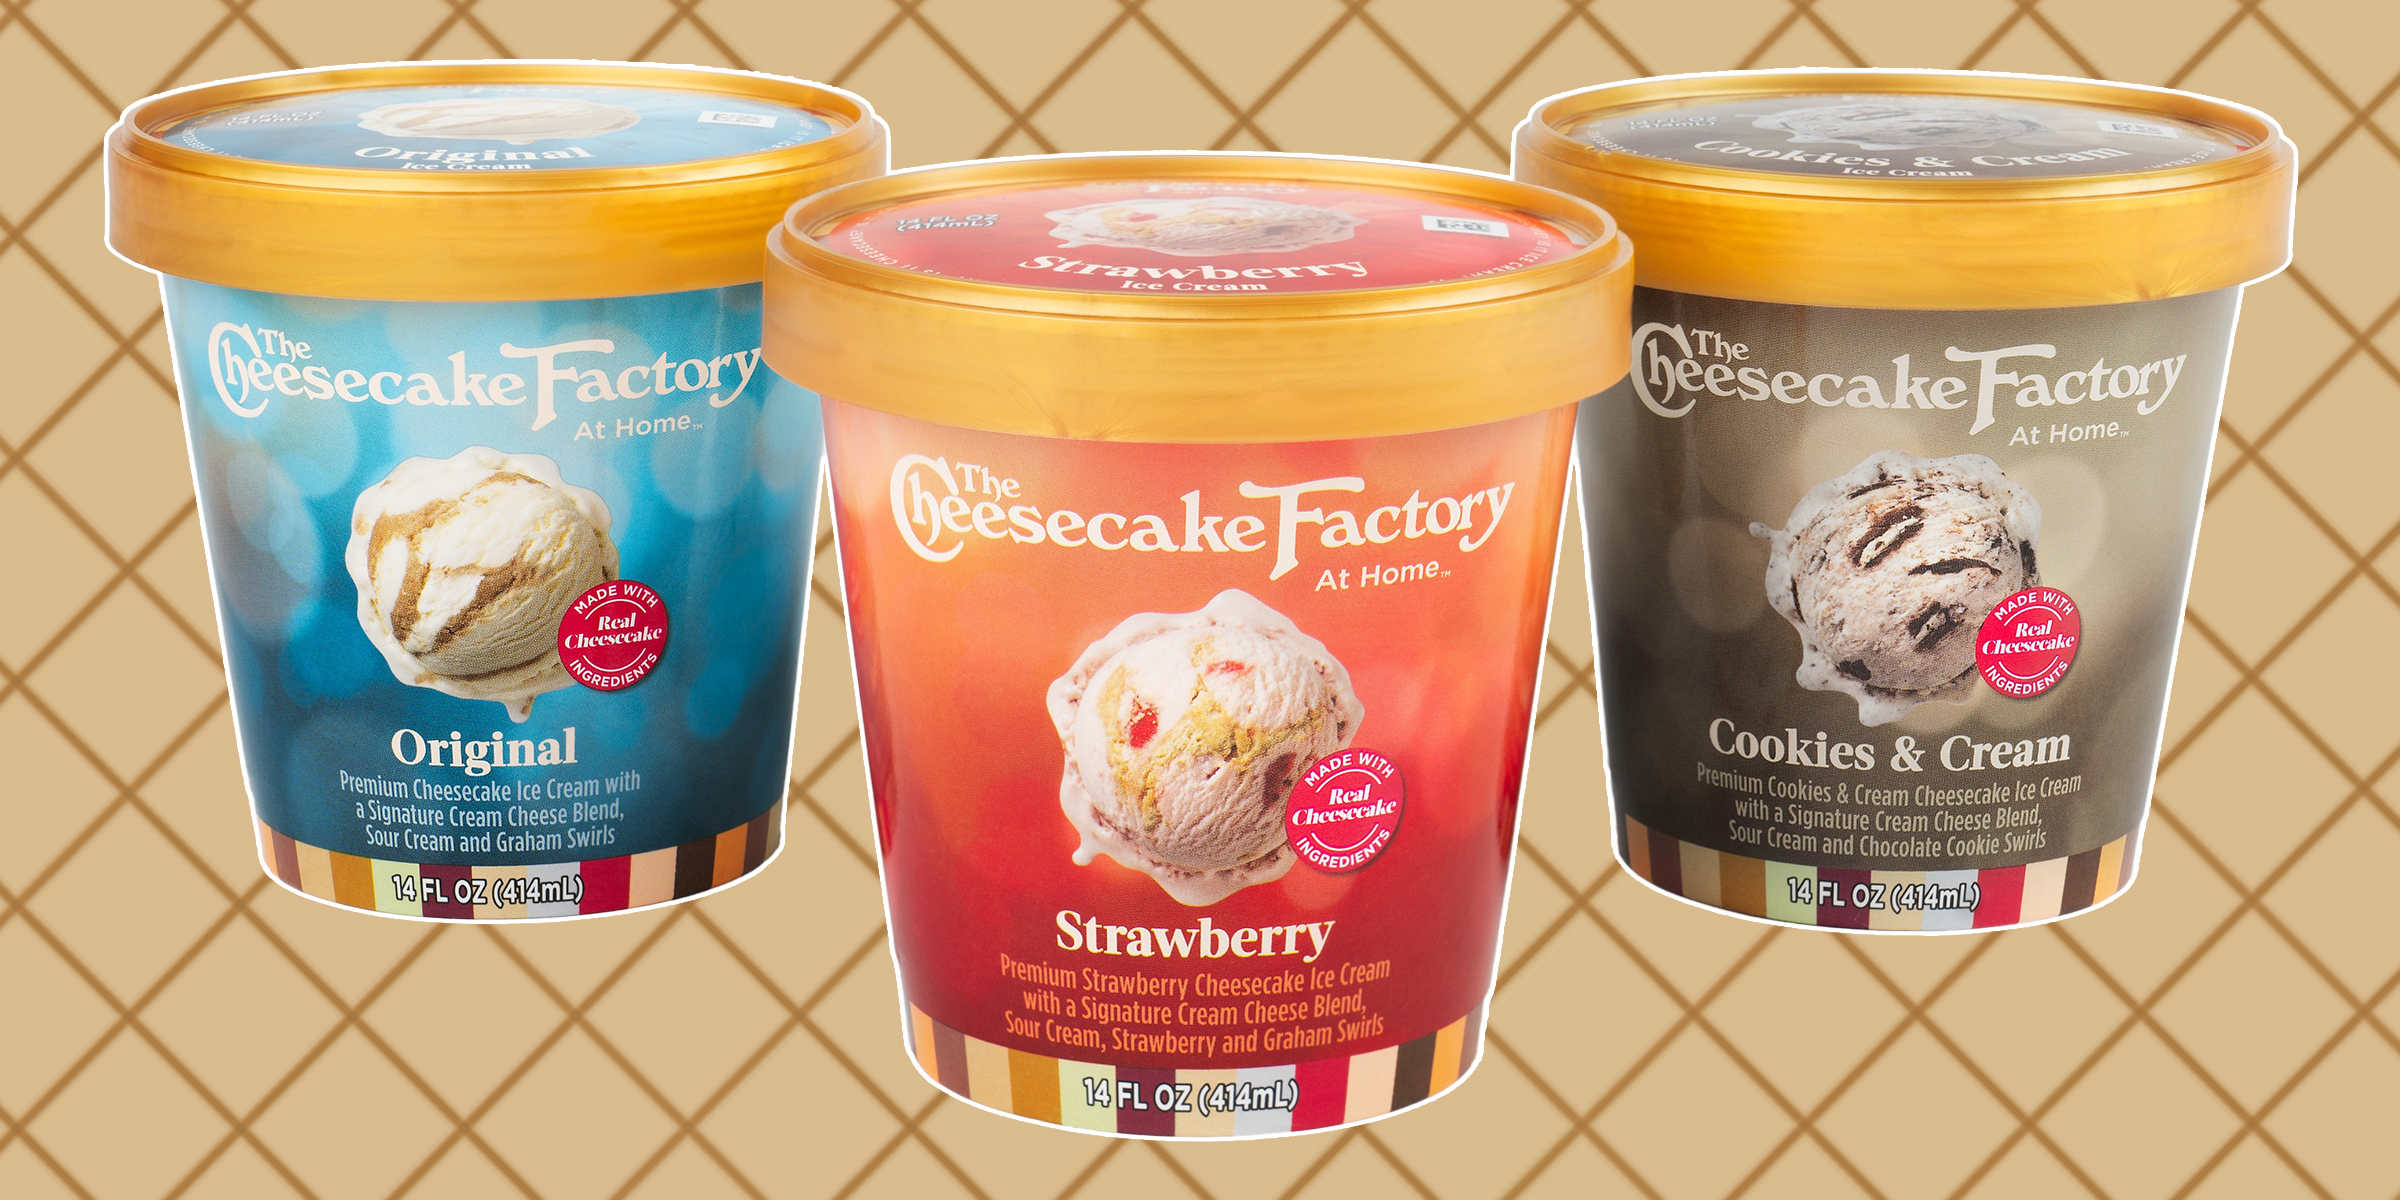 Stupendous The Cheesecake Factory Is Making Cheesecake Flavored Ice Cream In Birthday Cards Printable Trancafe Filternl